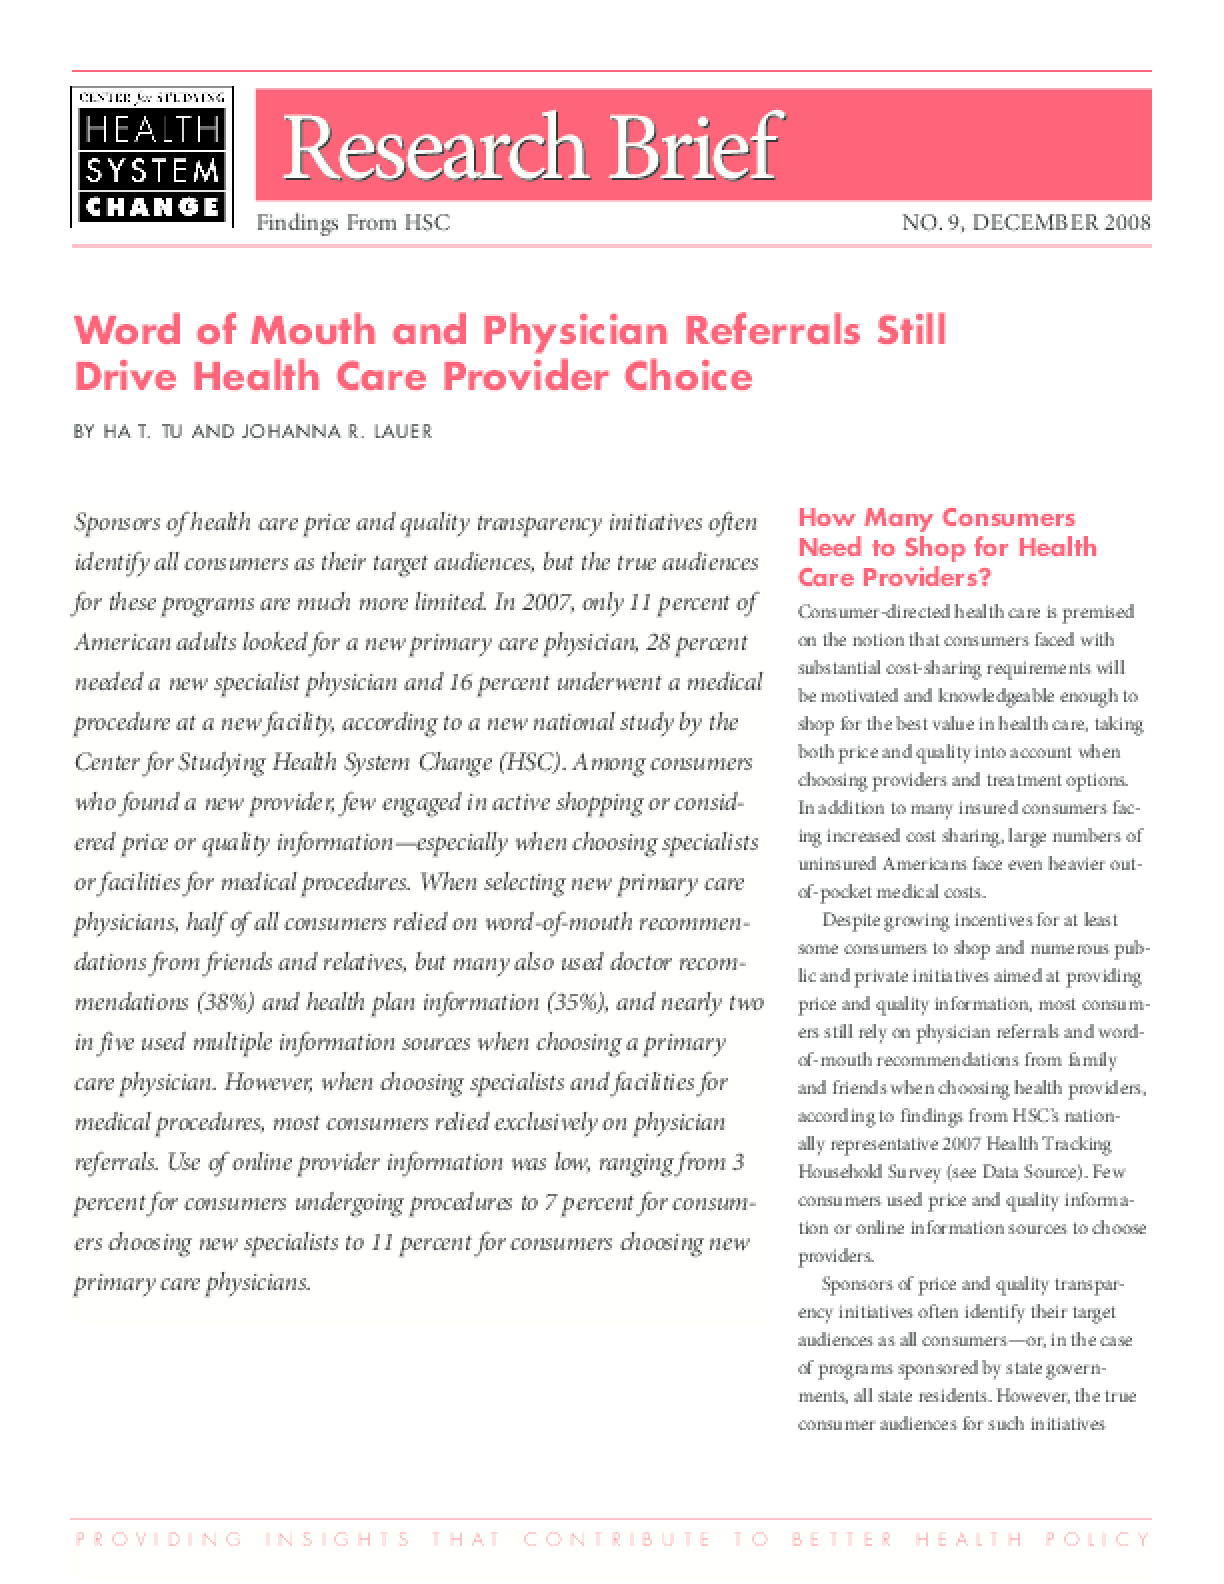 Word of Mouth and Physician Referrals Still Drive Health Care Provider Choice